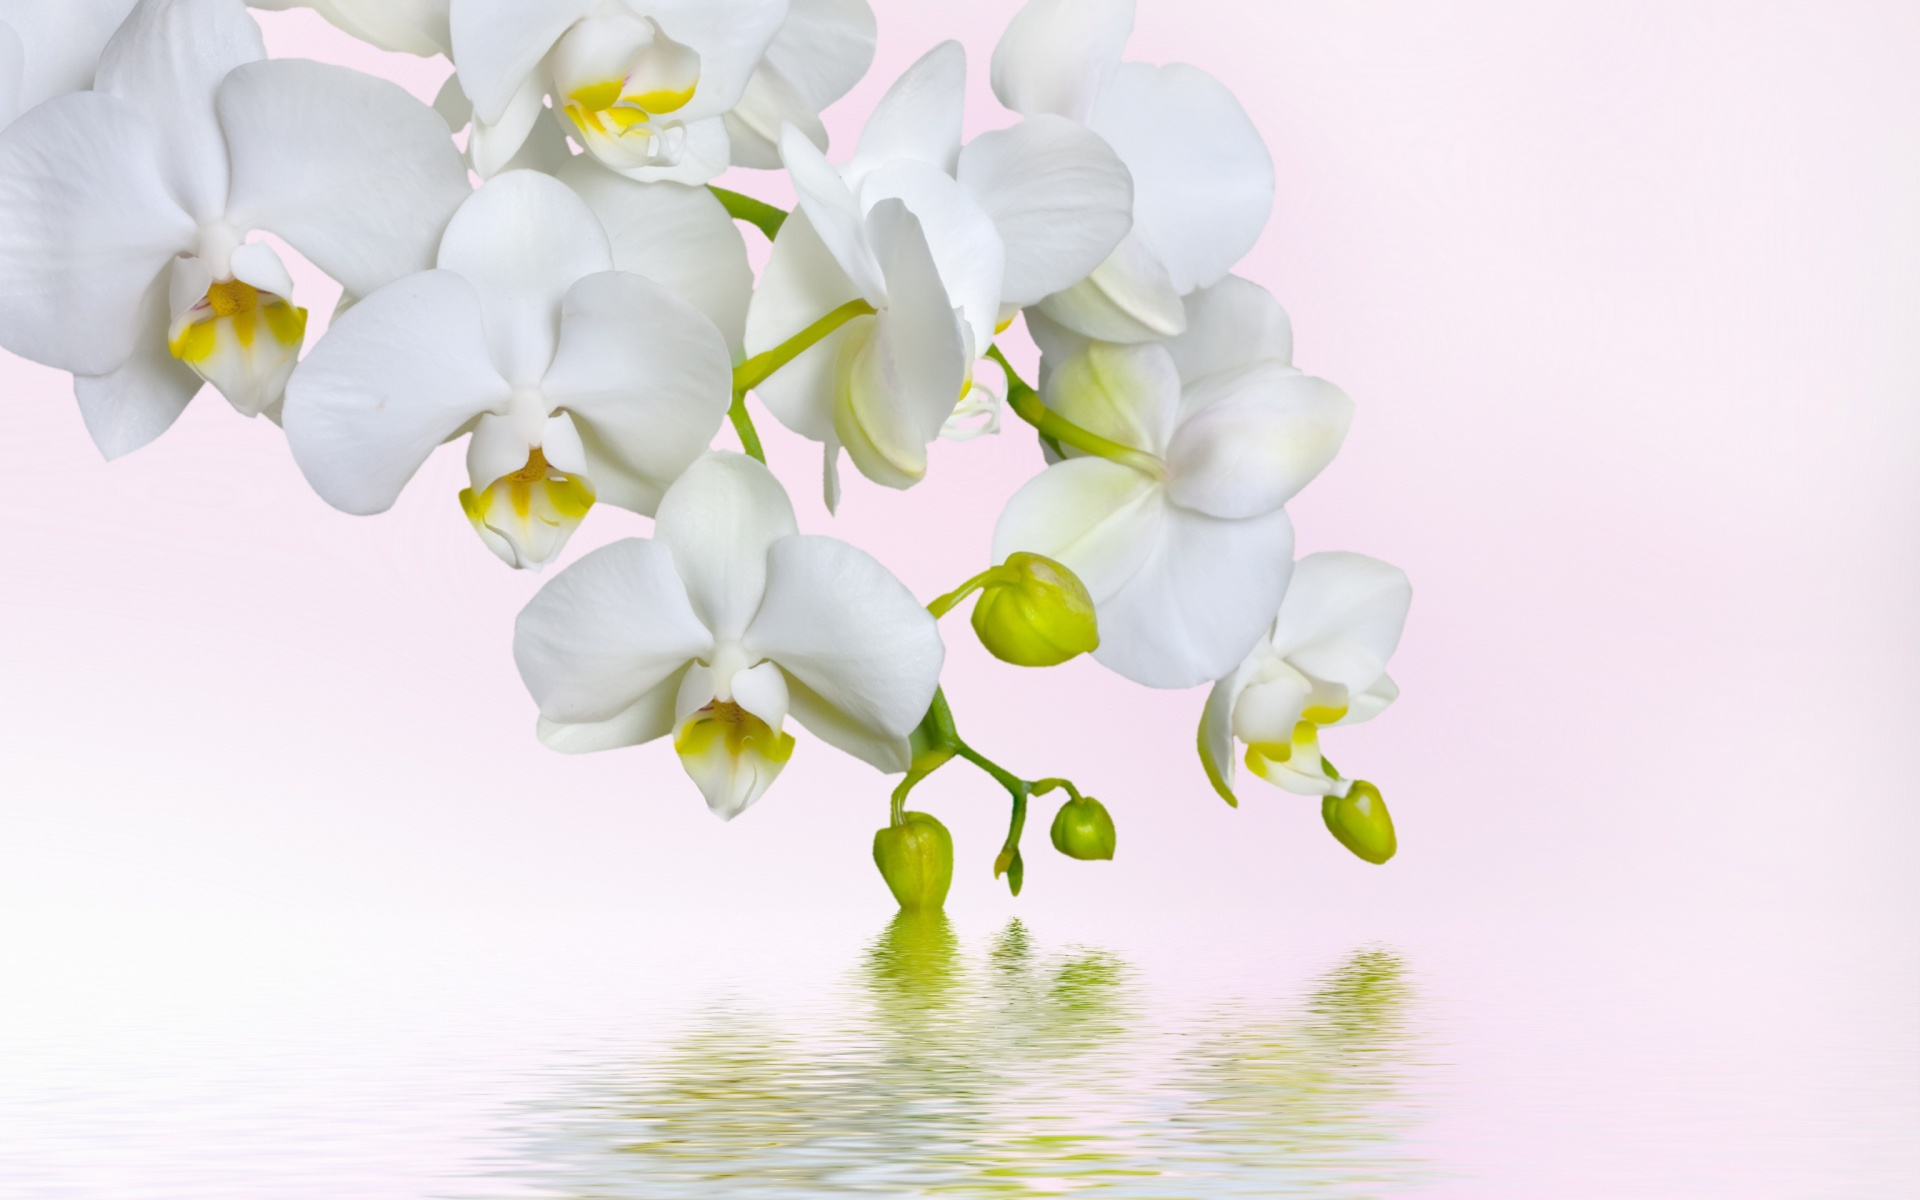 White orchids hd wallpaper hintergrund 1920x1200 id - White orchid flowers desktop wallpapers ...